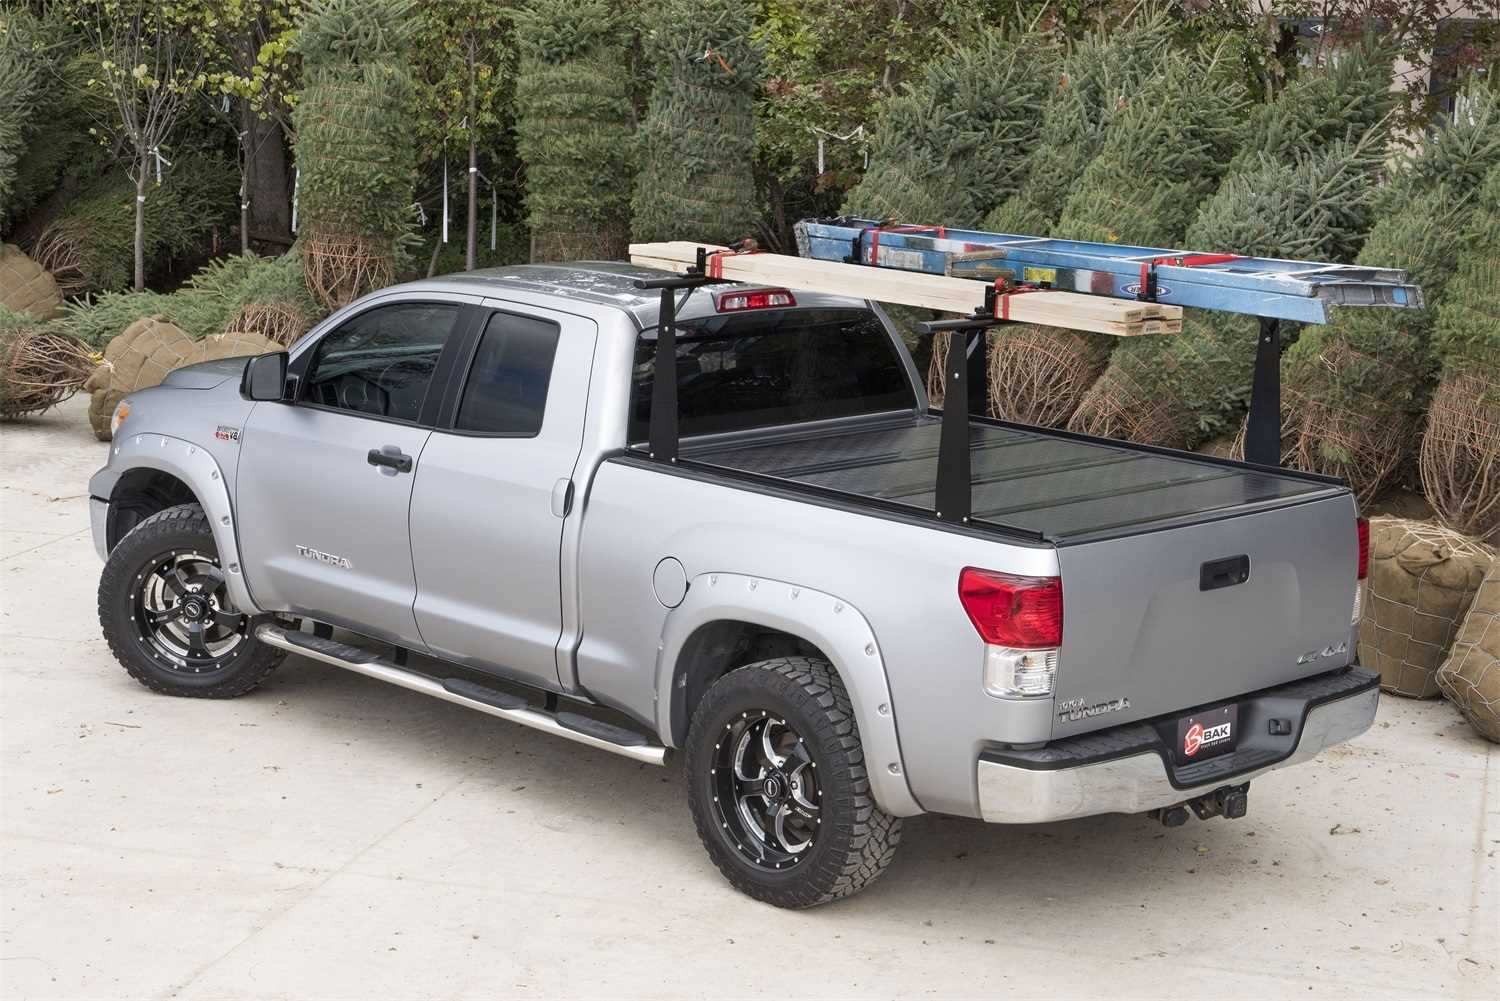 72506BT Bak Industries BAKFlip CS-F1 Hard Folding Truck Bed Cover/Integrated Rack System